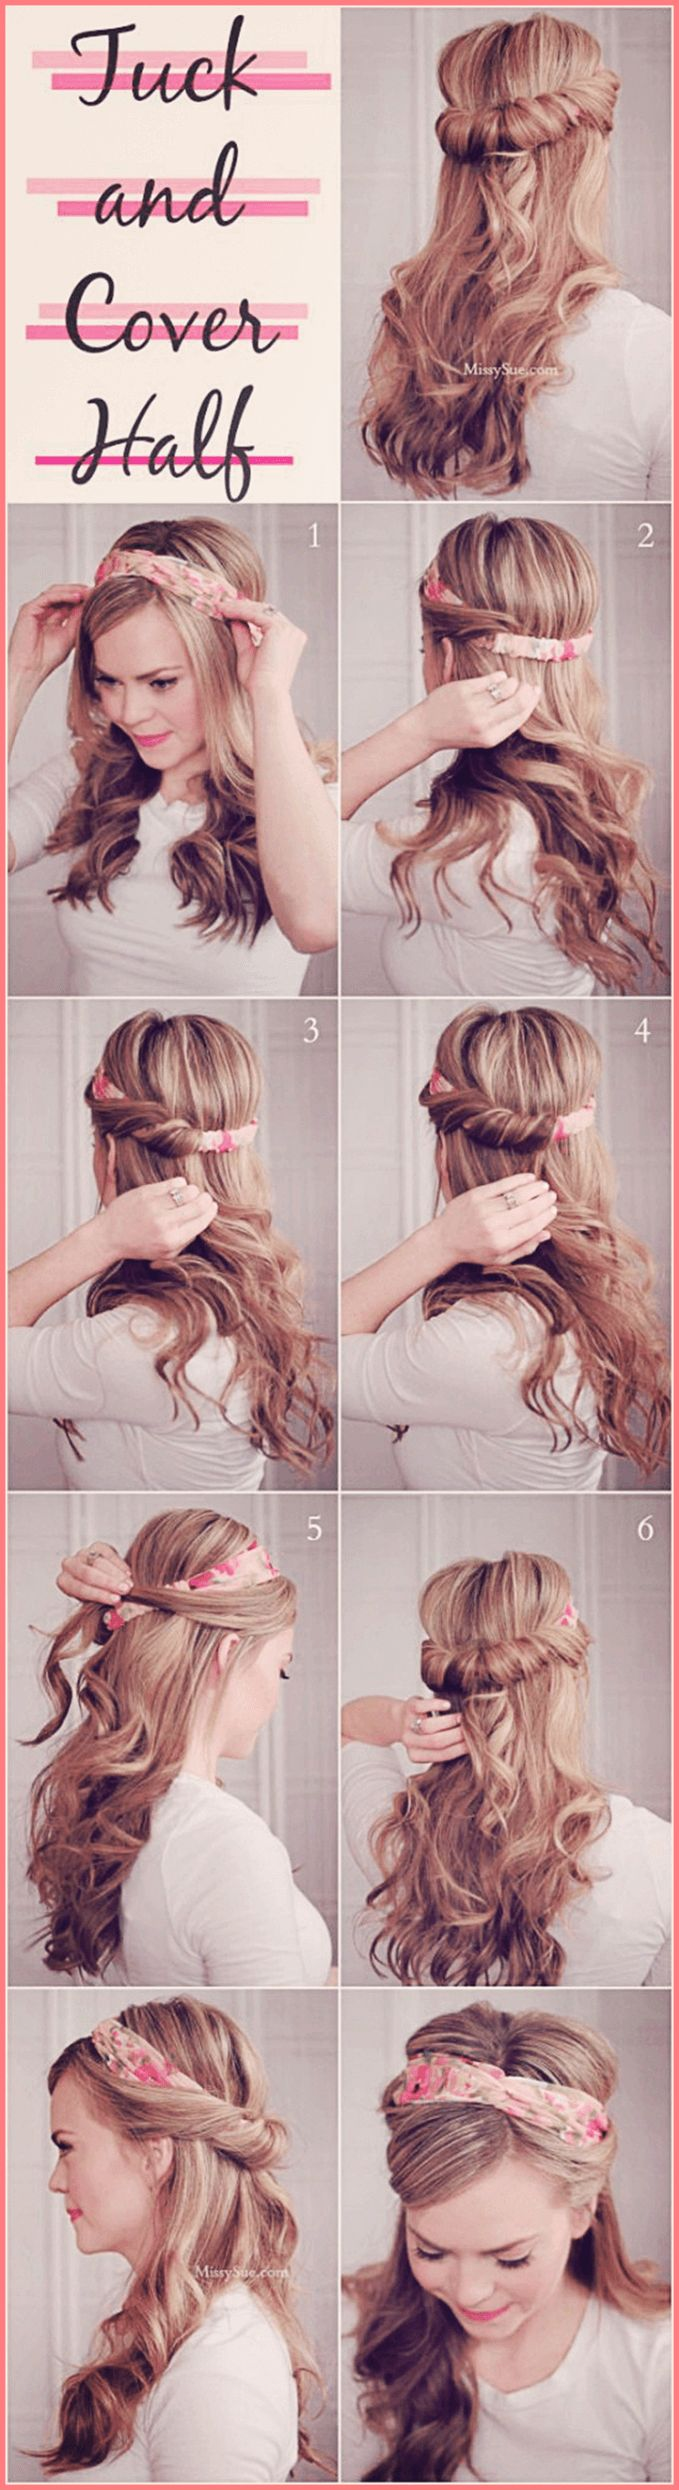 This chic and coveted hairstyle is very easy with a scarf or headband.